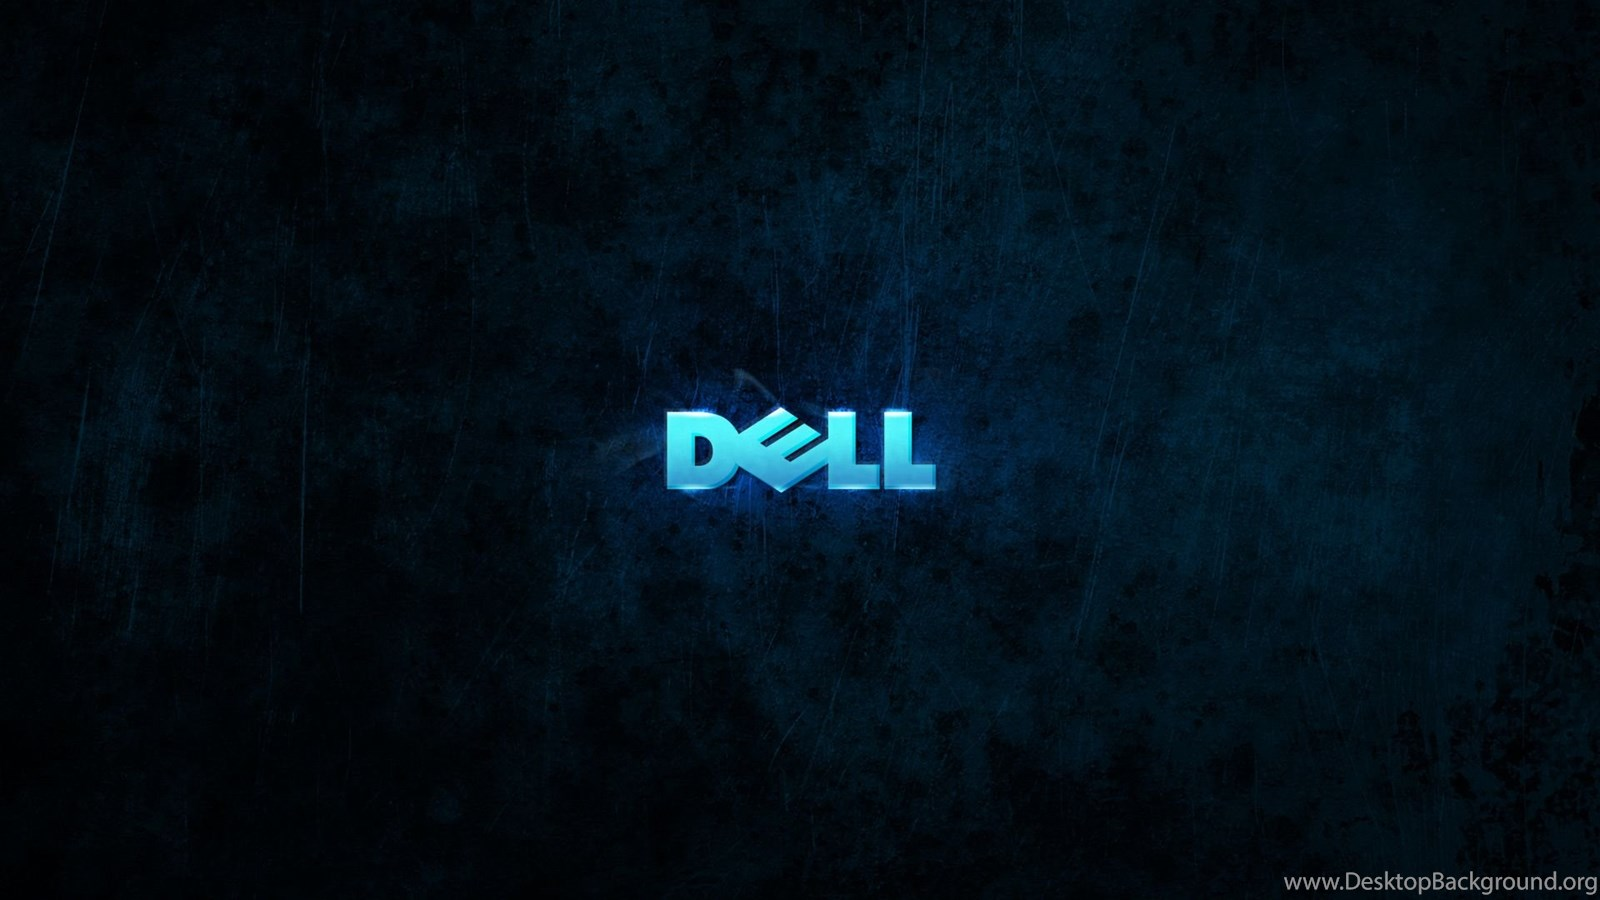 32 Dell Wallpapers For Free Download Desktop Background